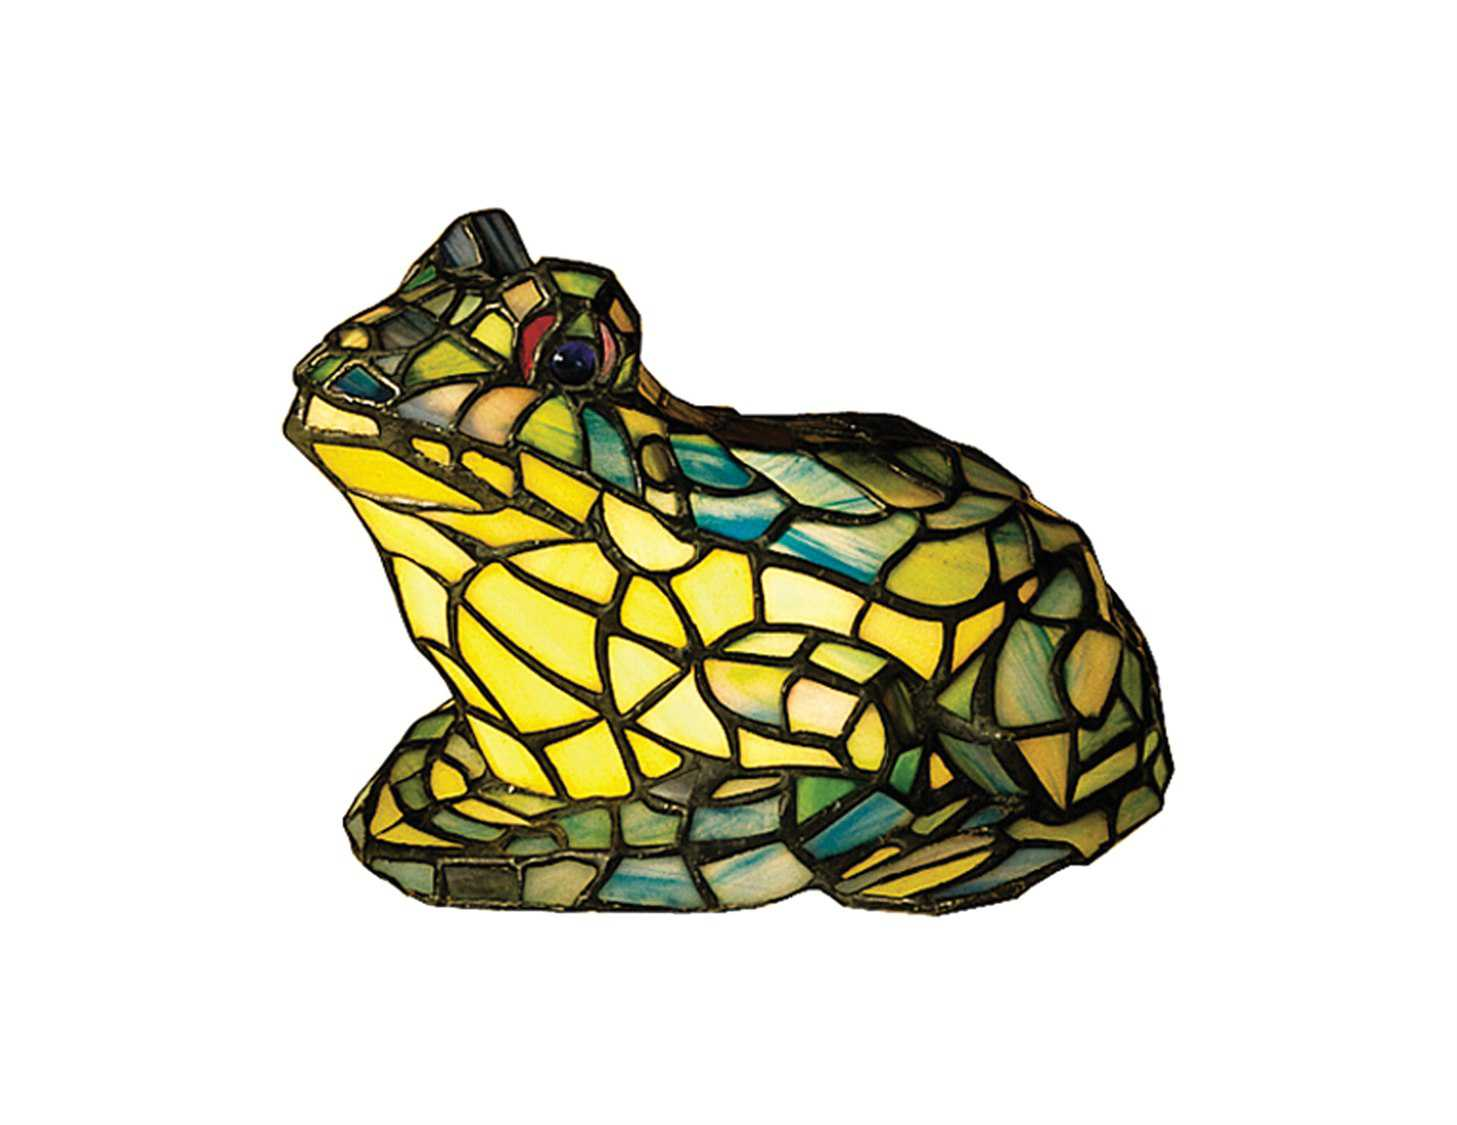 meyda tiffany frog glass multi color accent table lamp lamps elephant sculpture vintage marble coffee chestnut gold modern blue side with top wide nightstand drawers entry room